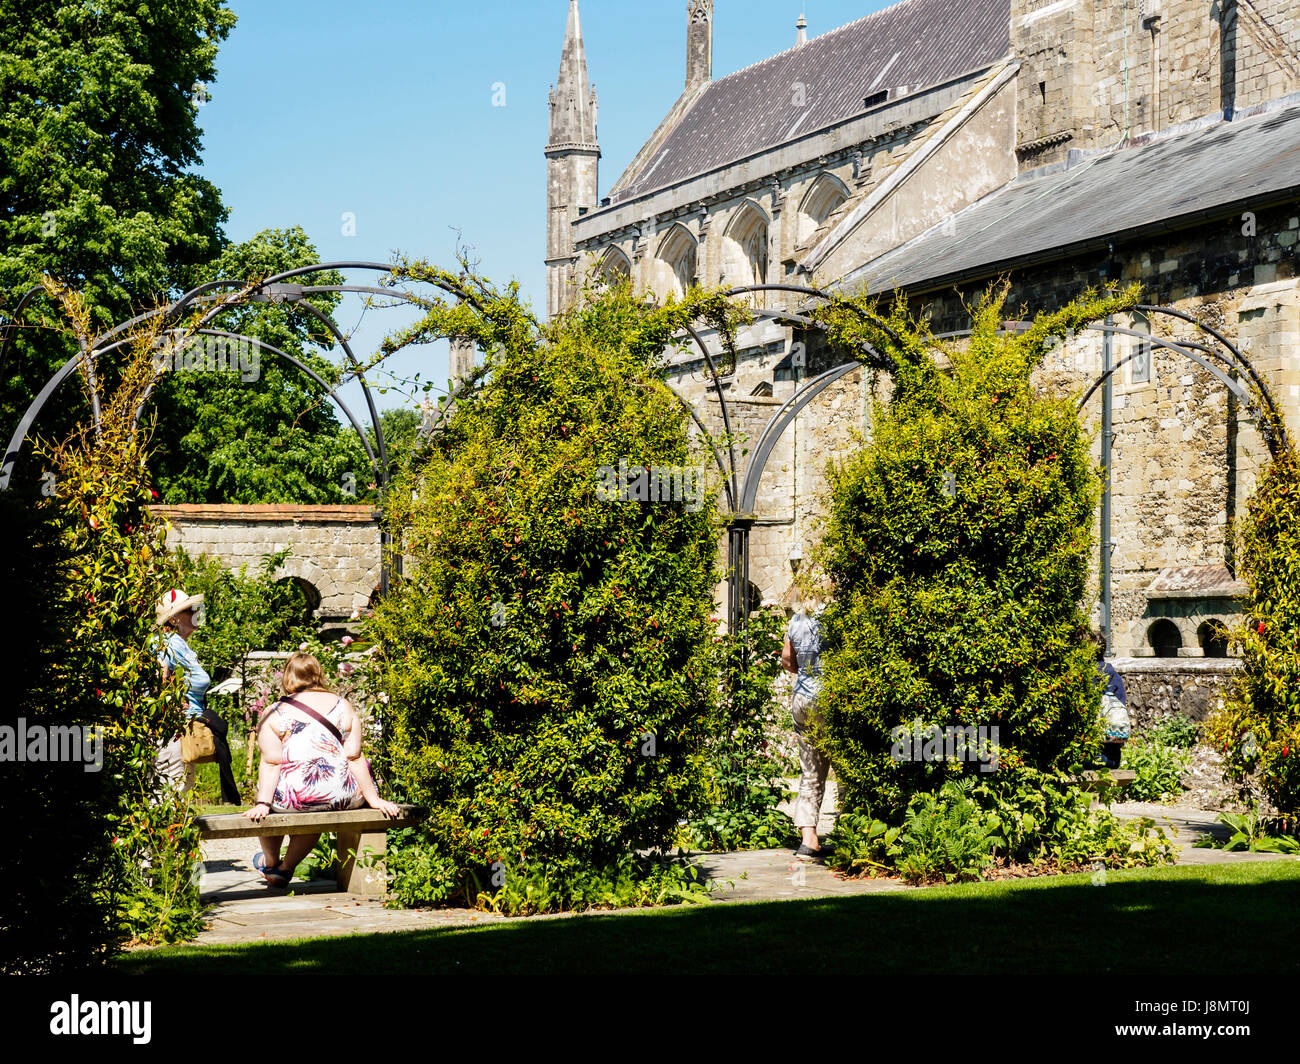 Visitors relaxing in the Dean Garnier Garden off the Inner Close of Winchester Cathedral in Hampshire, England. Stock Photo